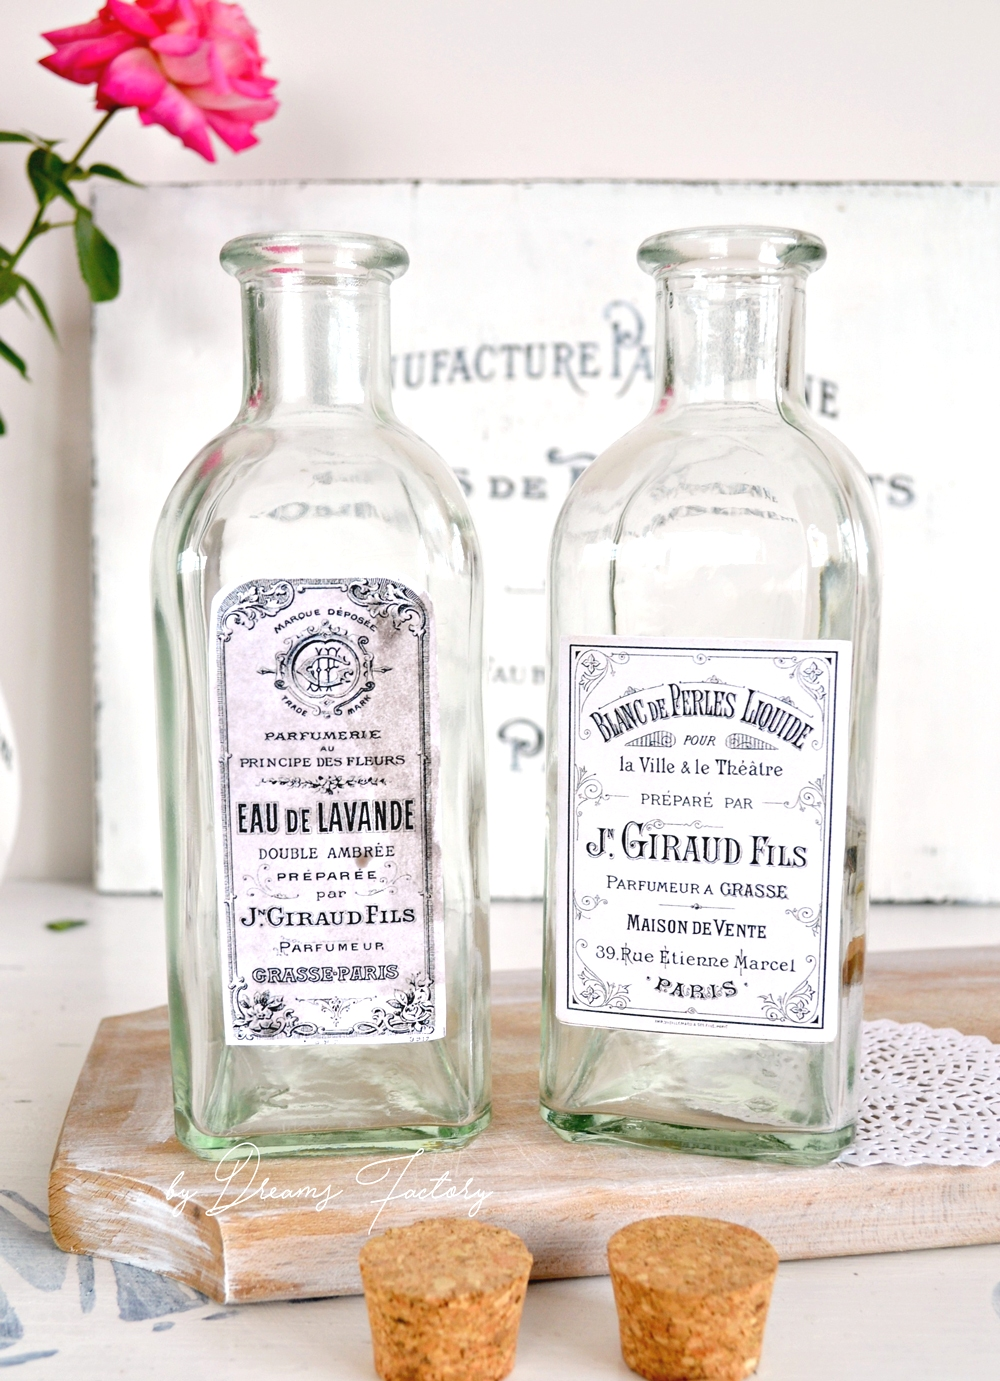 Tutorial borcane si sticle de farmacie cu aer vintage frantuzesc - by Dreams Factory